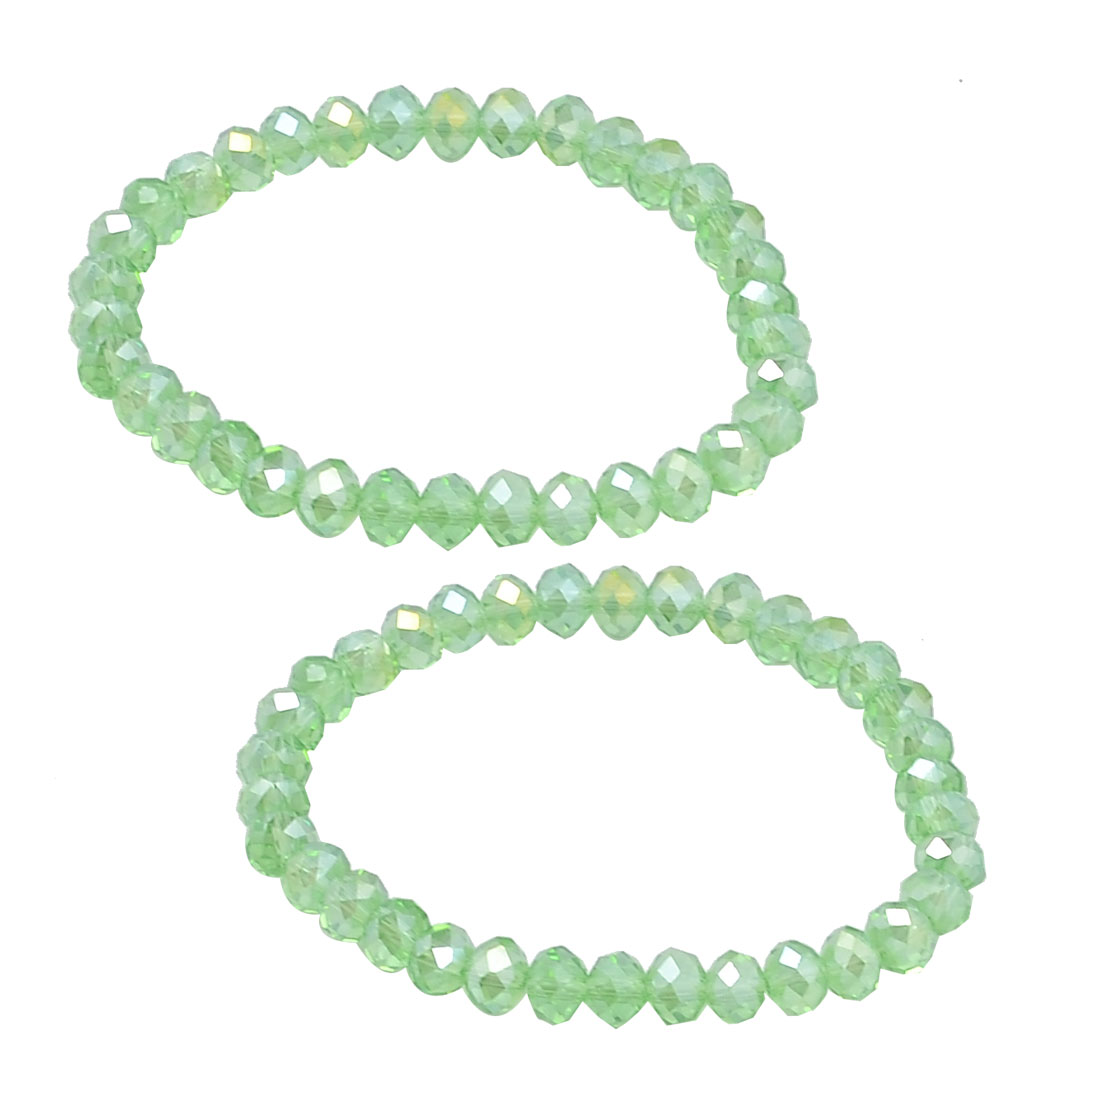 Women Green 6mm Dia Faceted Crystal Bead Linked Elastic Bracelets 2 Pcs